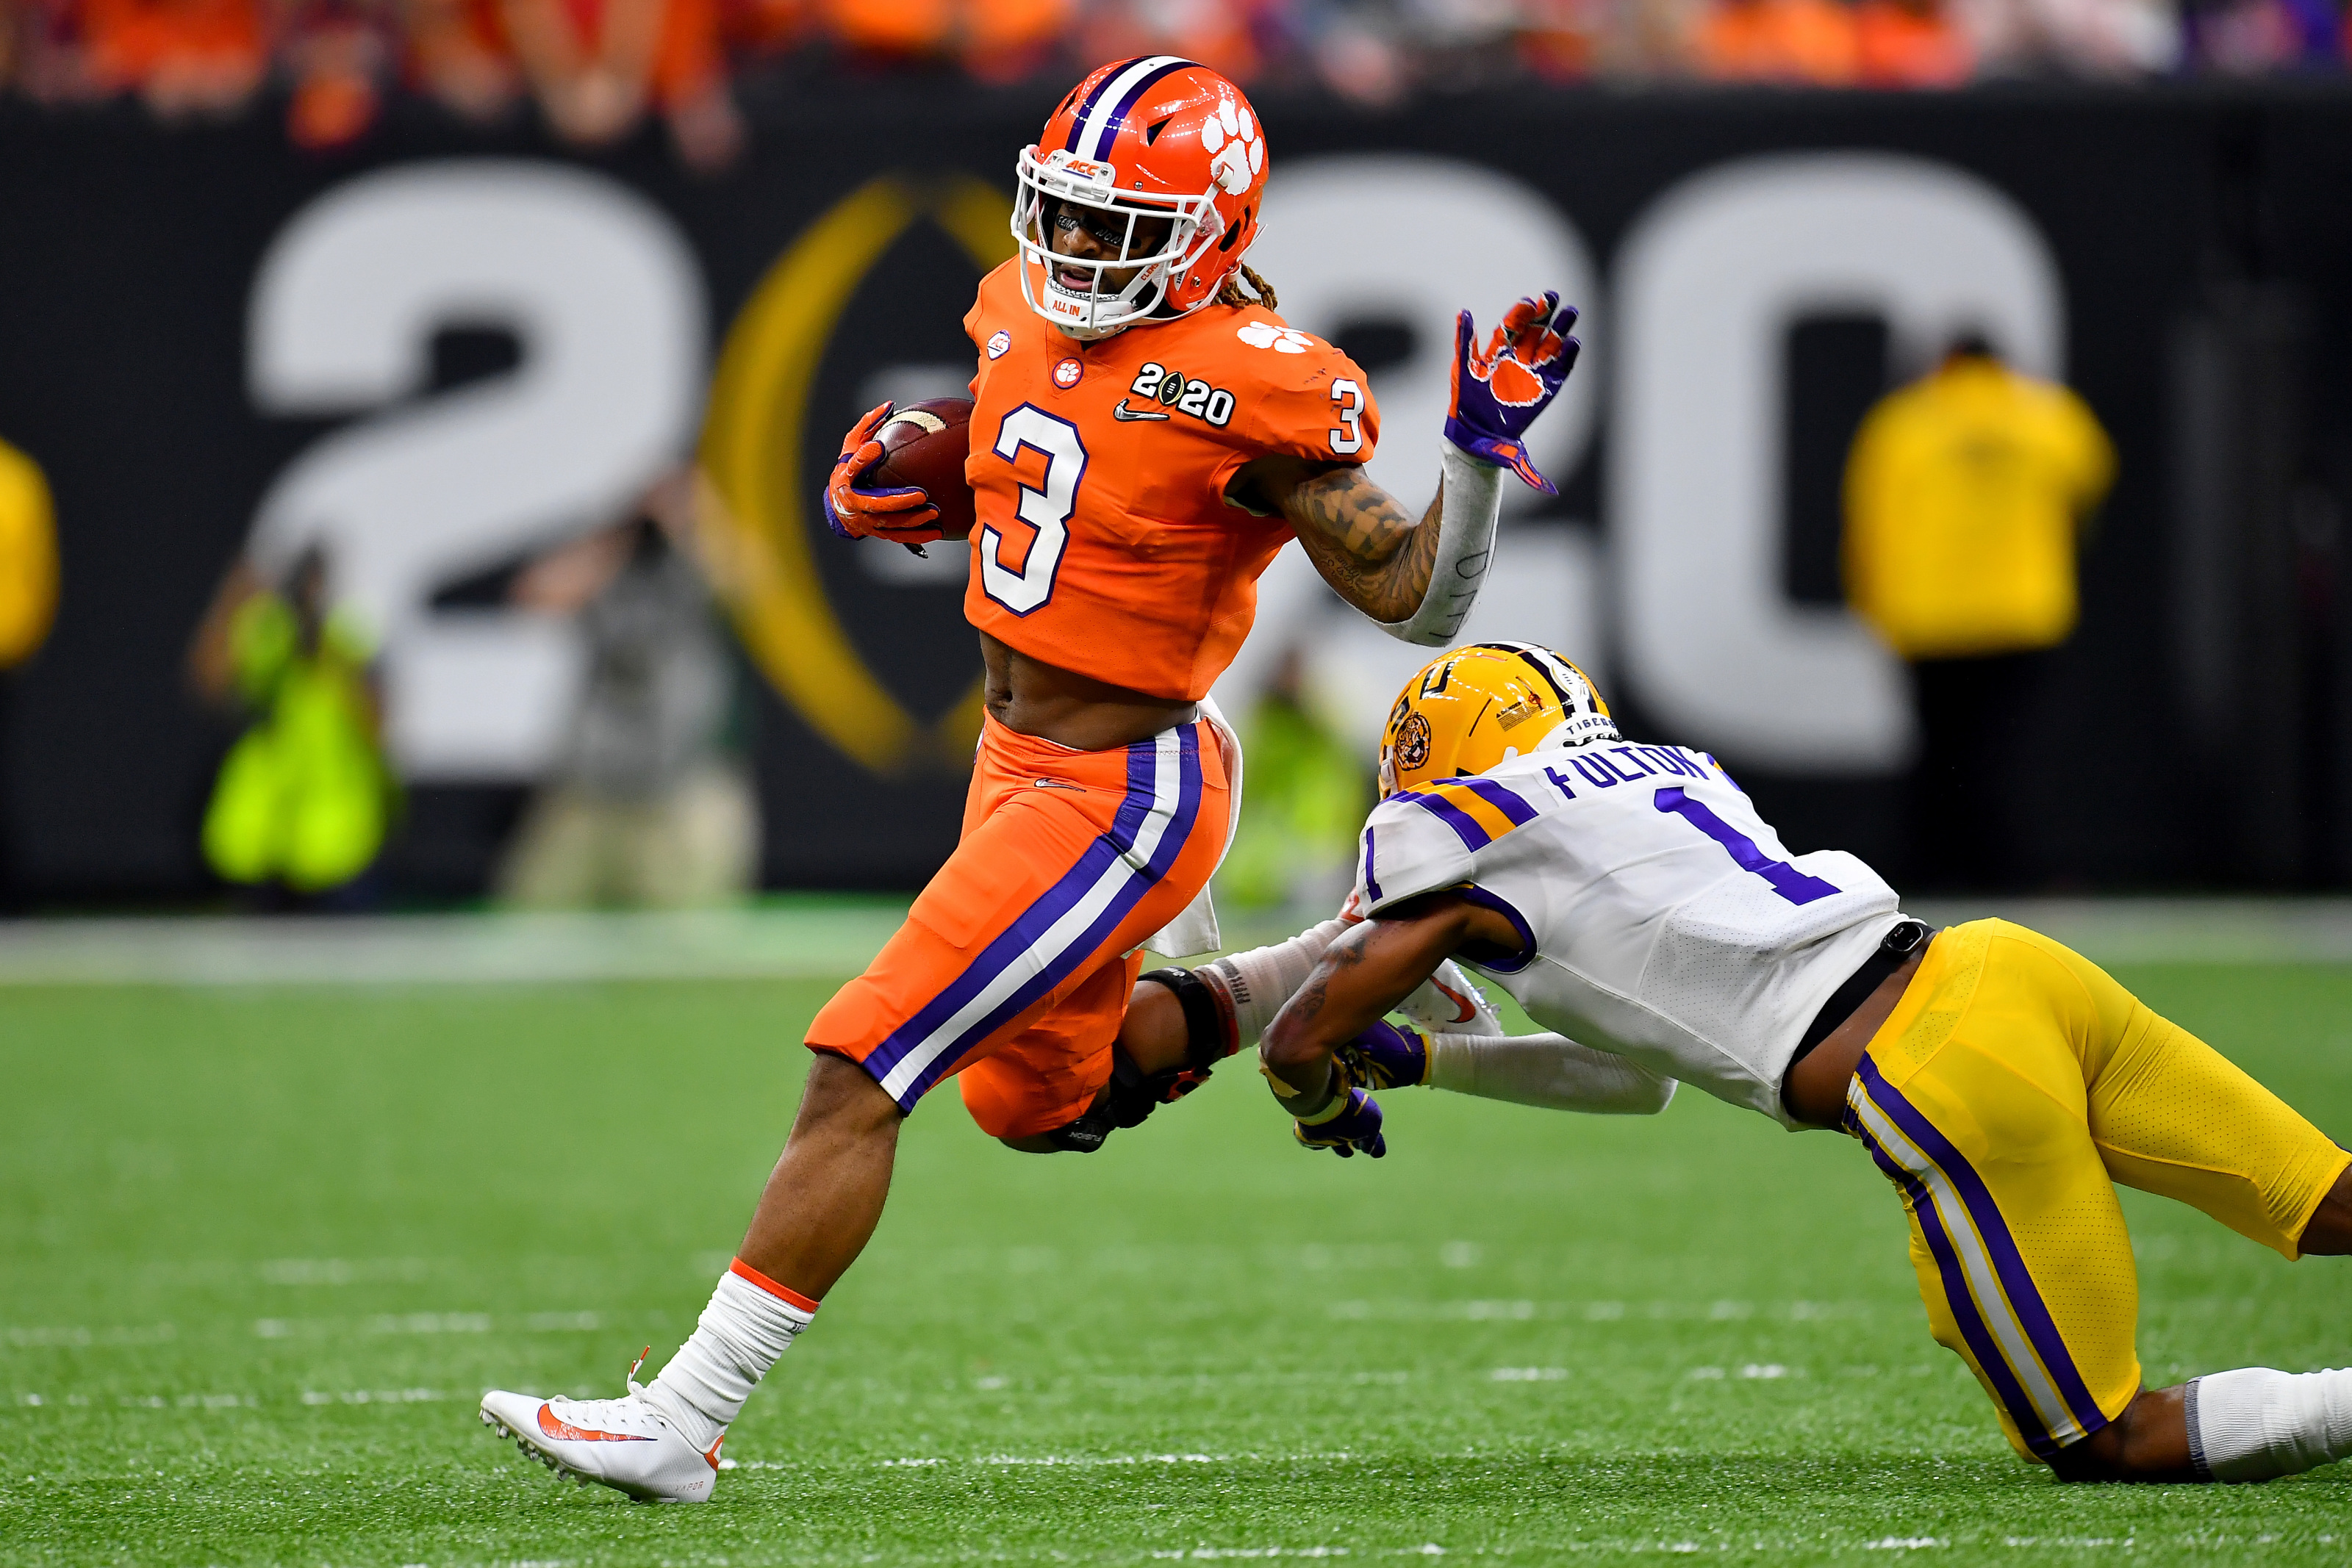 2021 NFL Draft: Clemson WR Amari Rodgers early scouting report